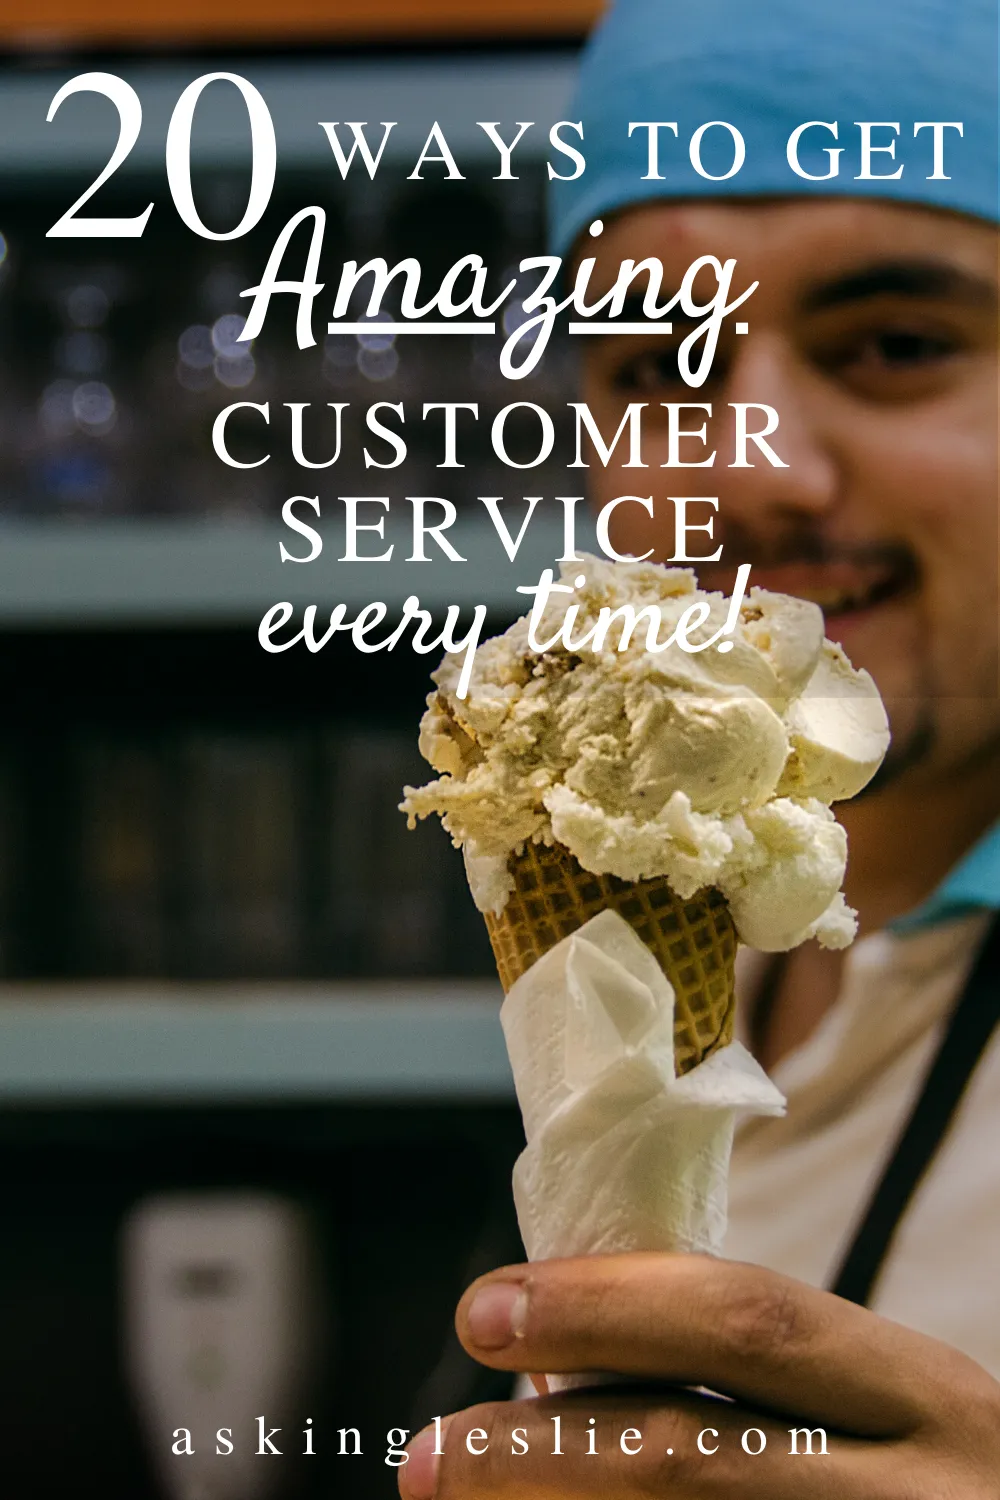 20 Ways to Get Amazing Customer Service Every Time in 2020